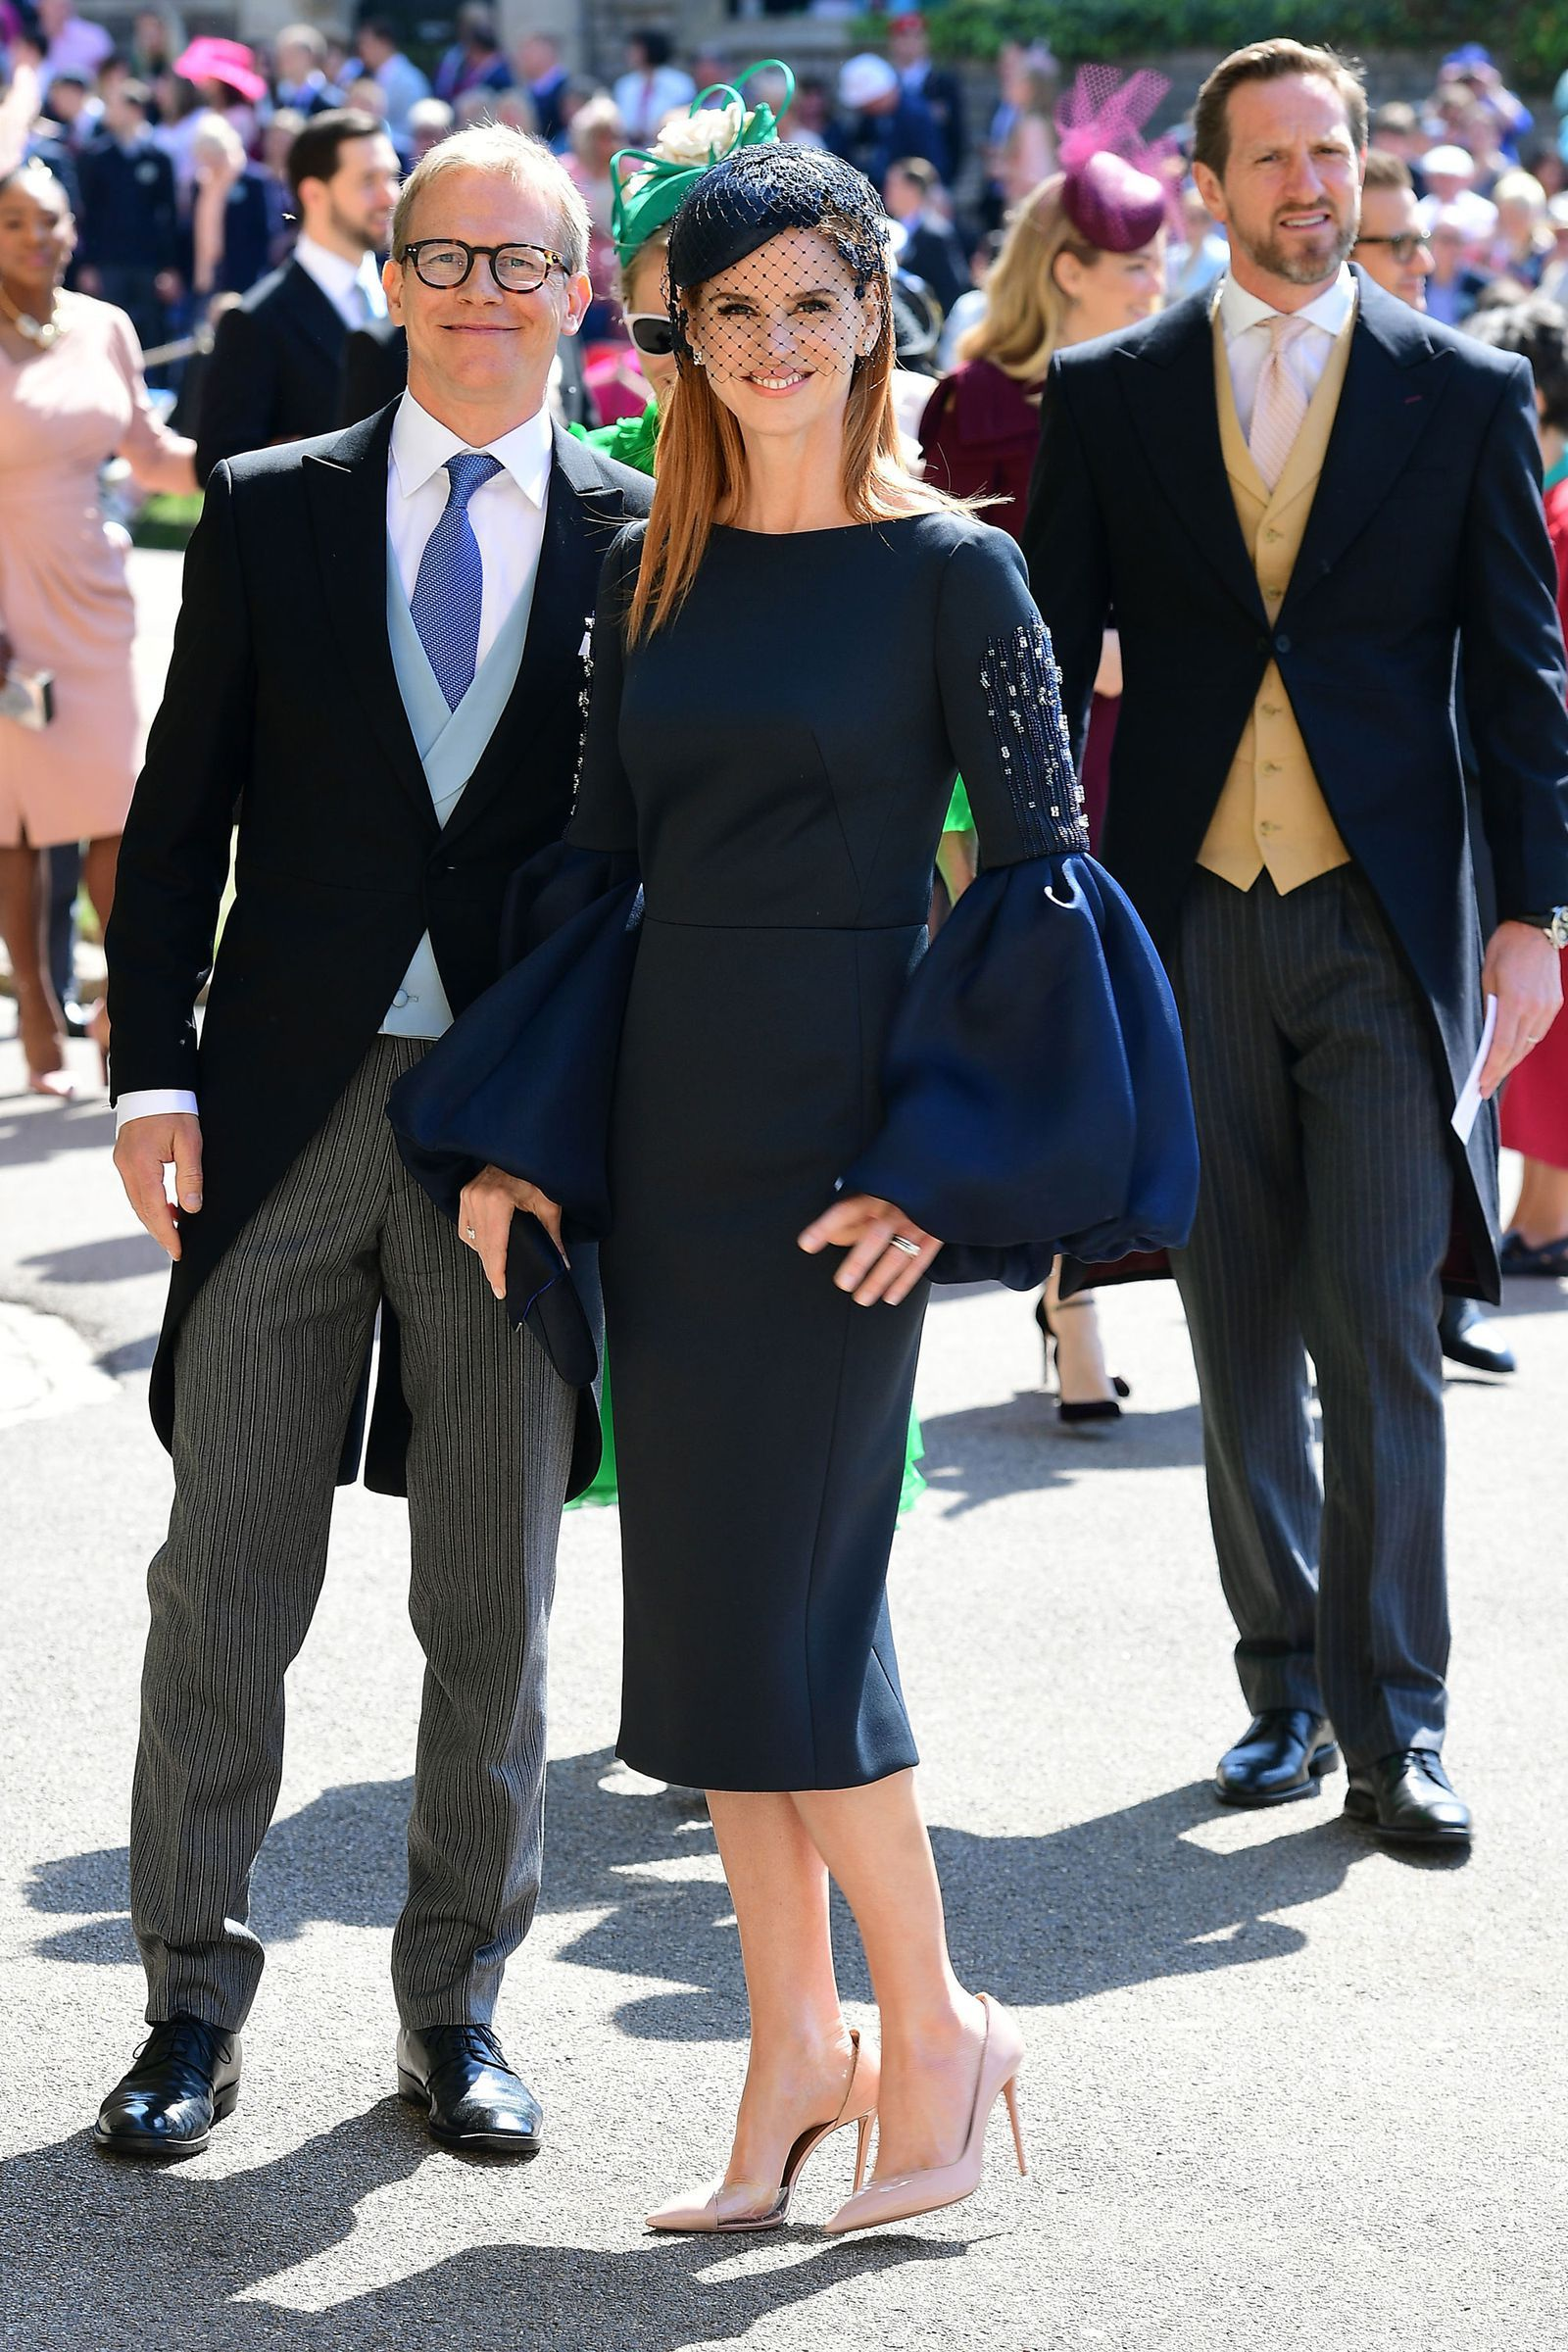 The 10 Best Dressed Guests At The Royal Wedding Royal Wedding Outfits Royal Wedding Guests Outfits Navy Dress Outfits [ 2400 x 1600 Pixel ]